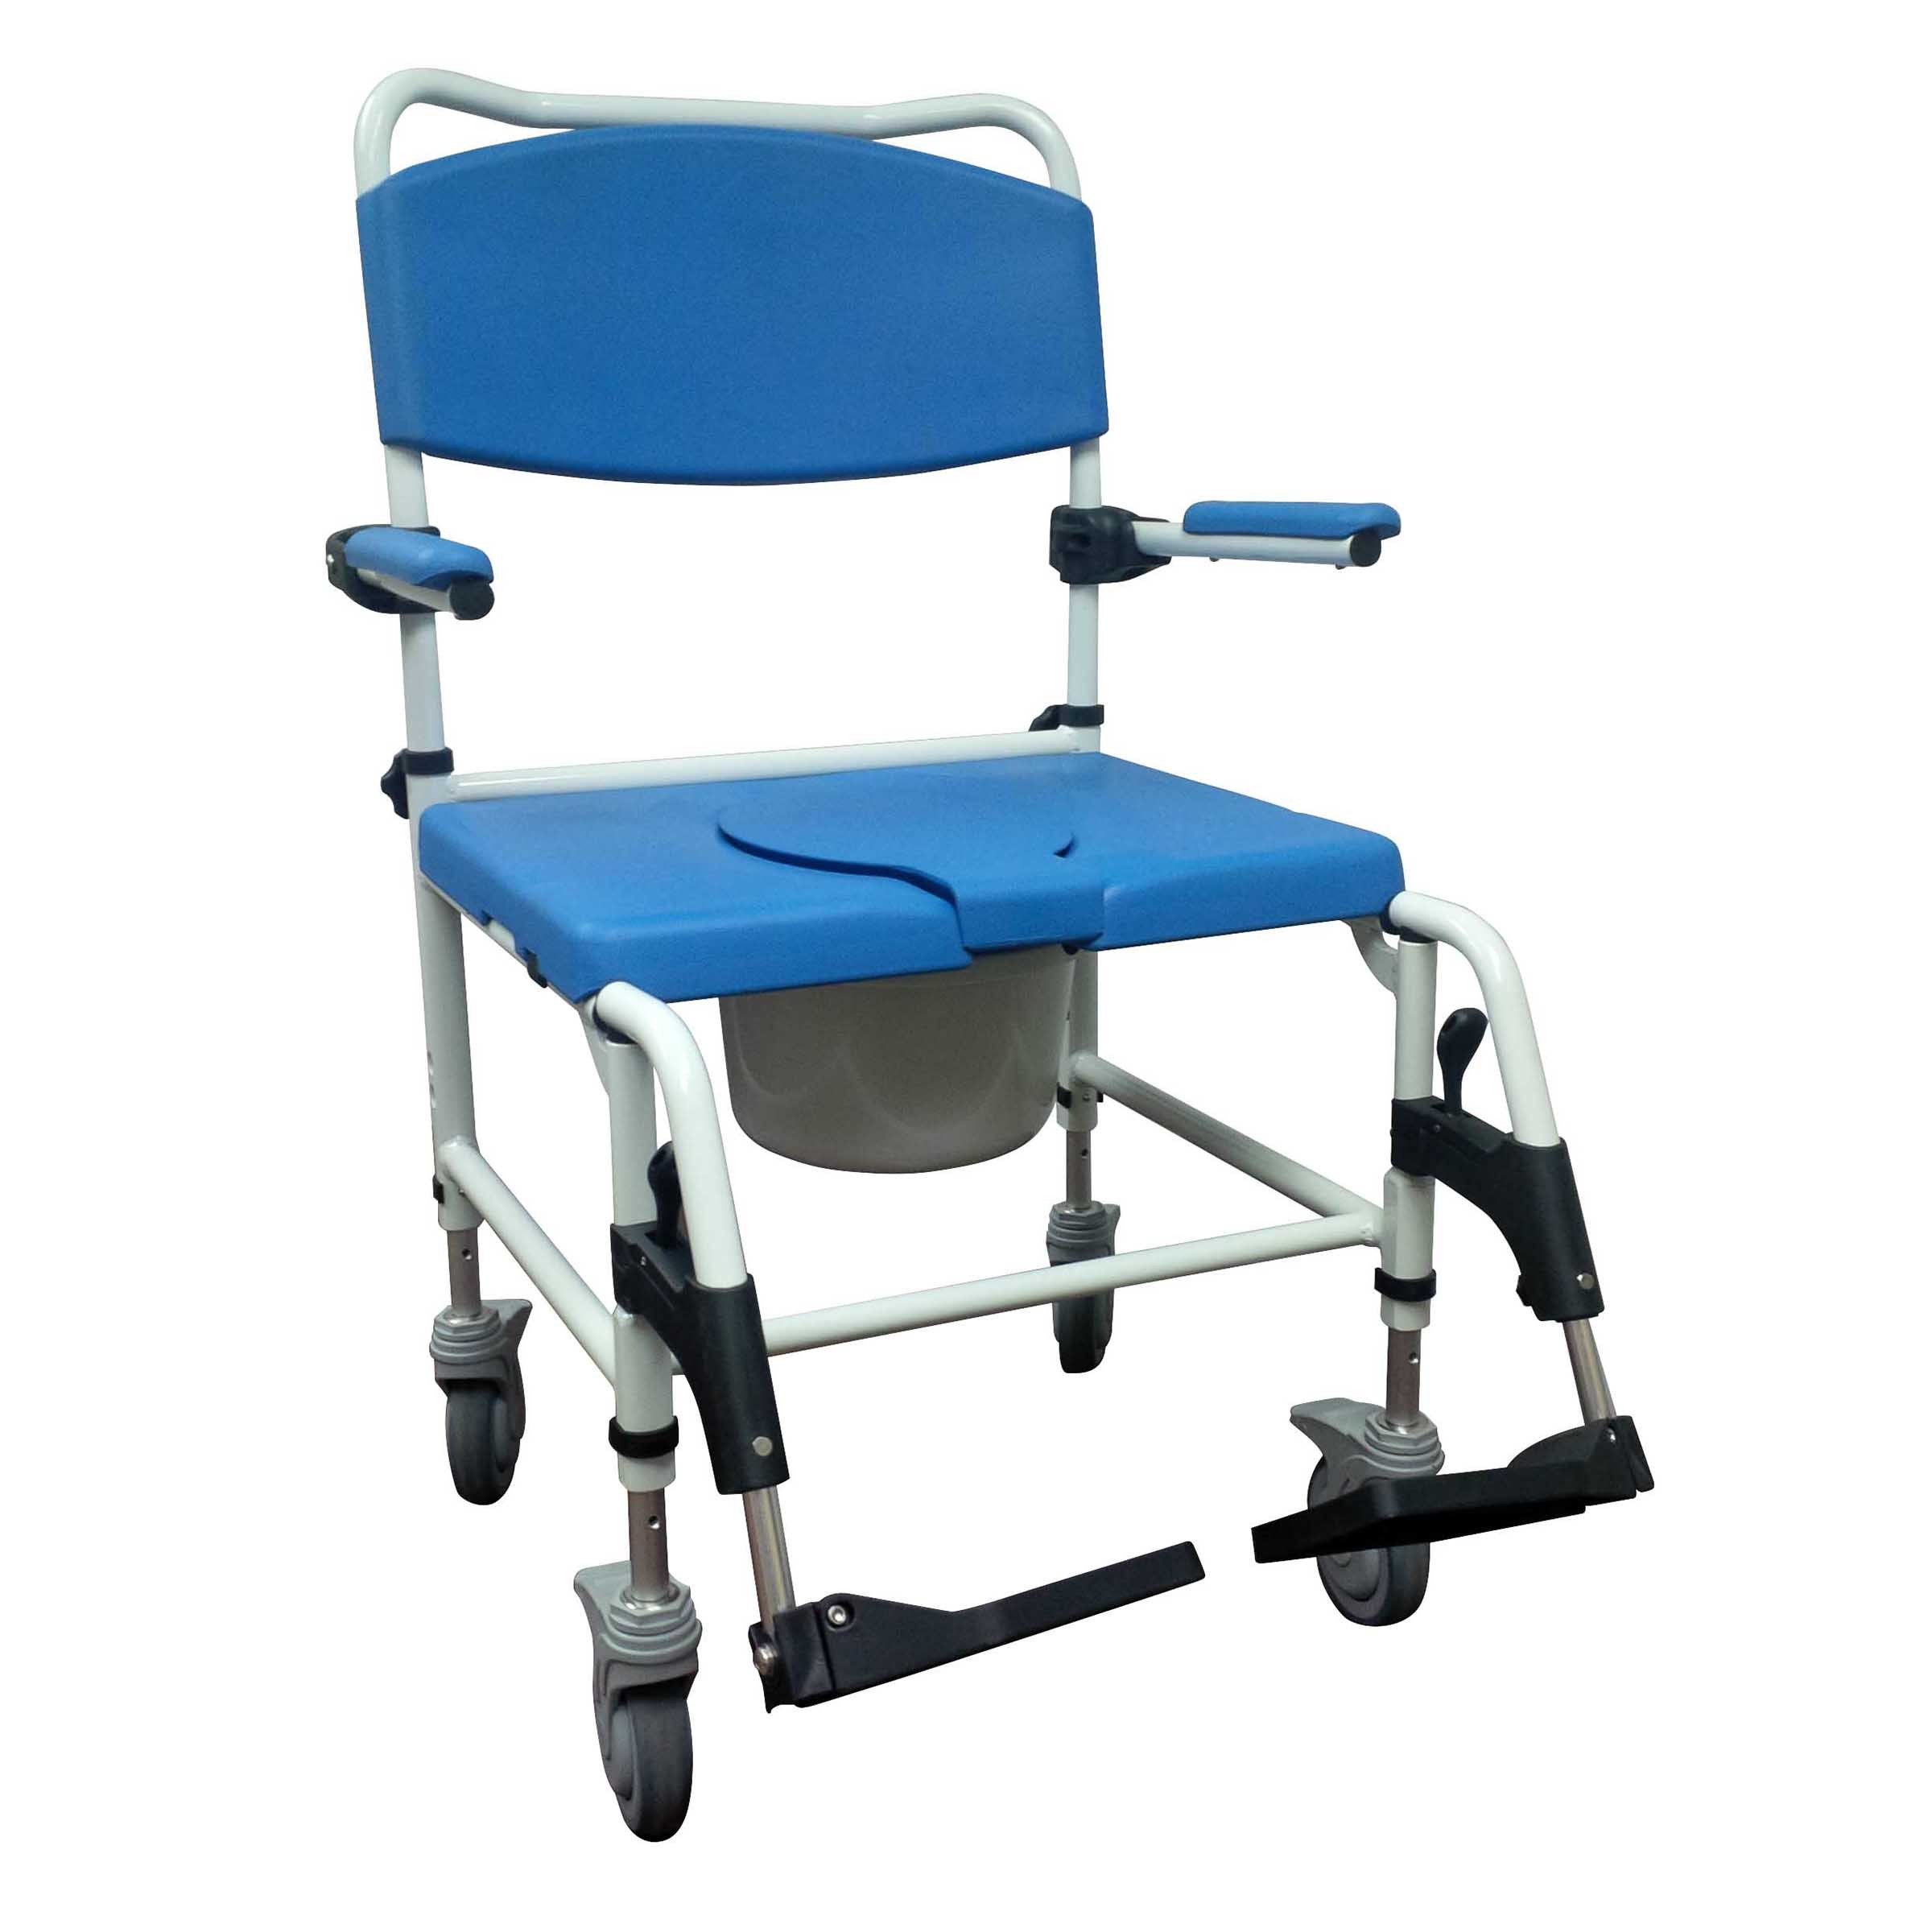 For The General Public It Might Be Difficult To Get Excited About A Bath Safety Meets Commode Shower Chair Mash Up But Anyone Who Has Had